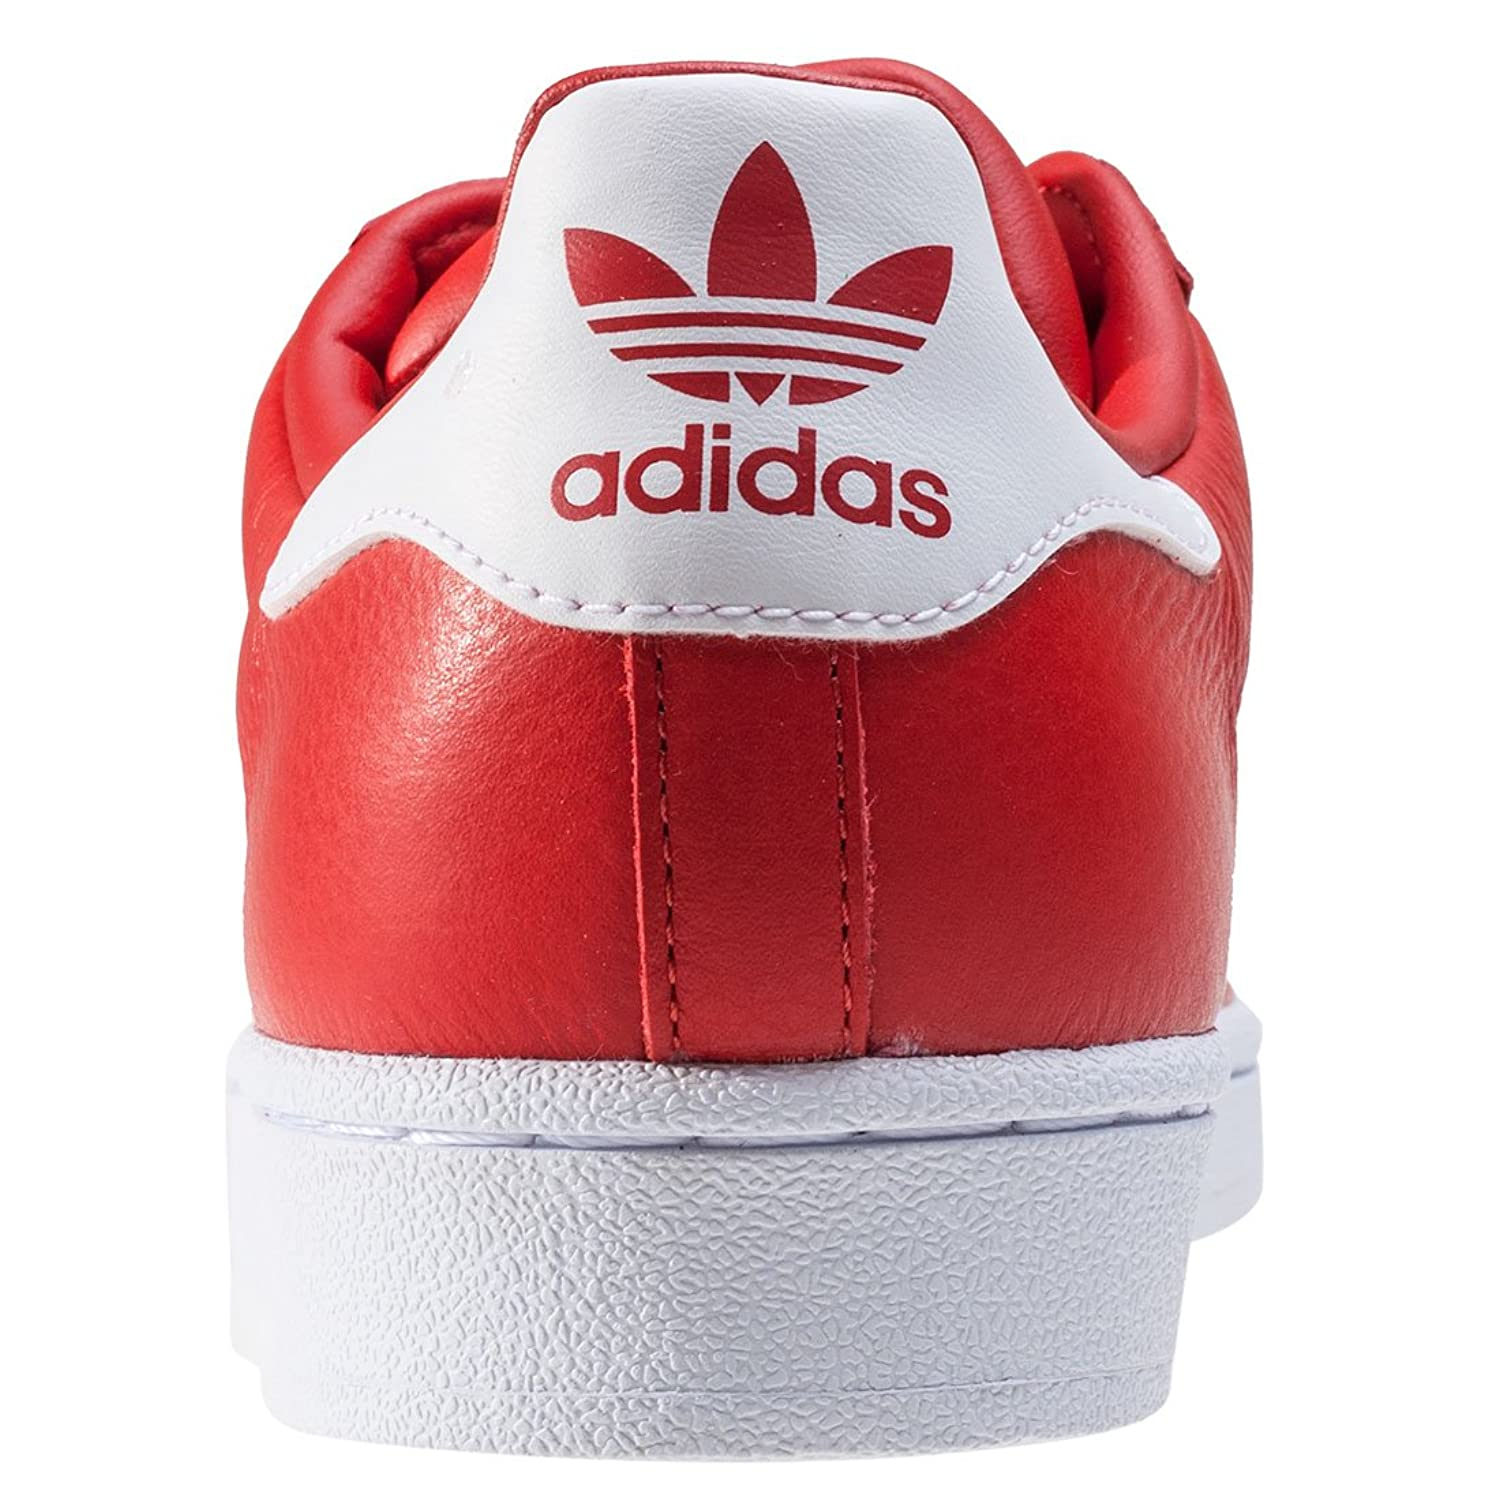 adidas Superstar Foundation, Men\u0027s Trainers: Amazon.co.uk: Shoes \u0026 Bags